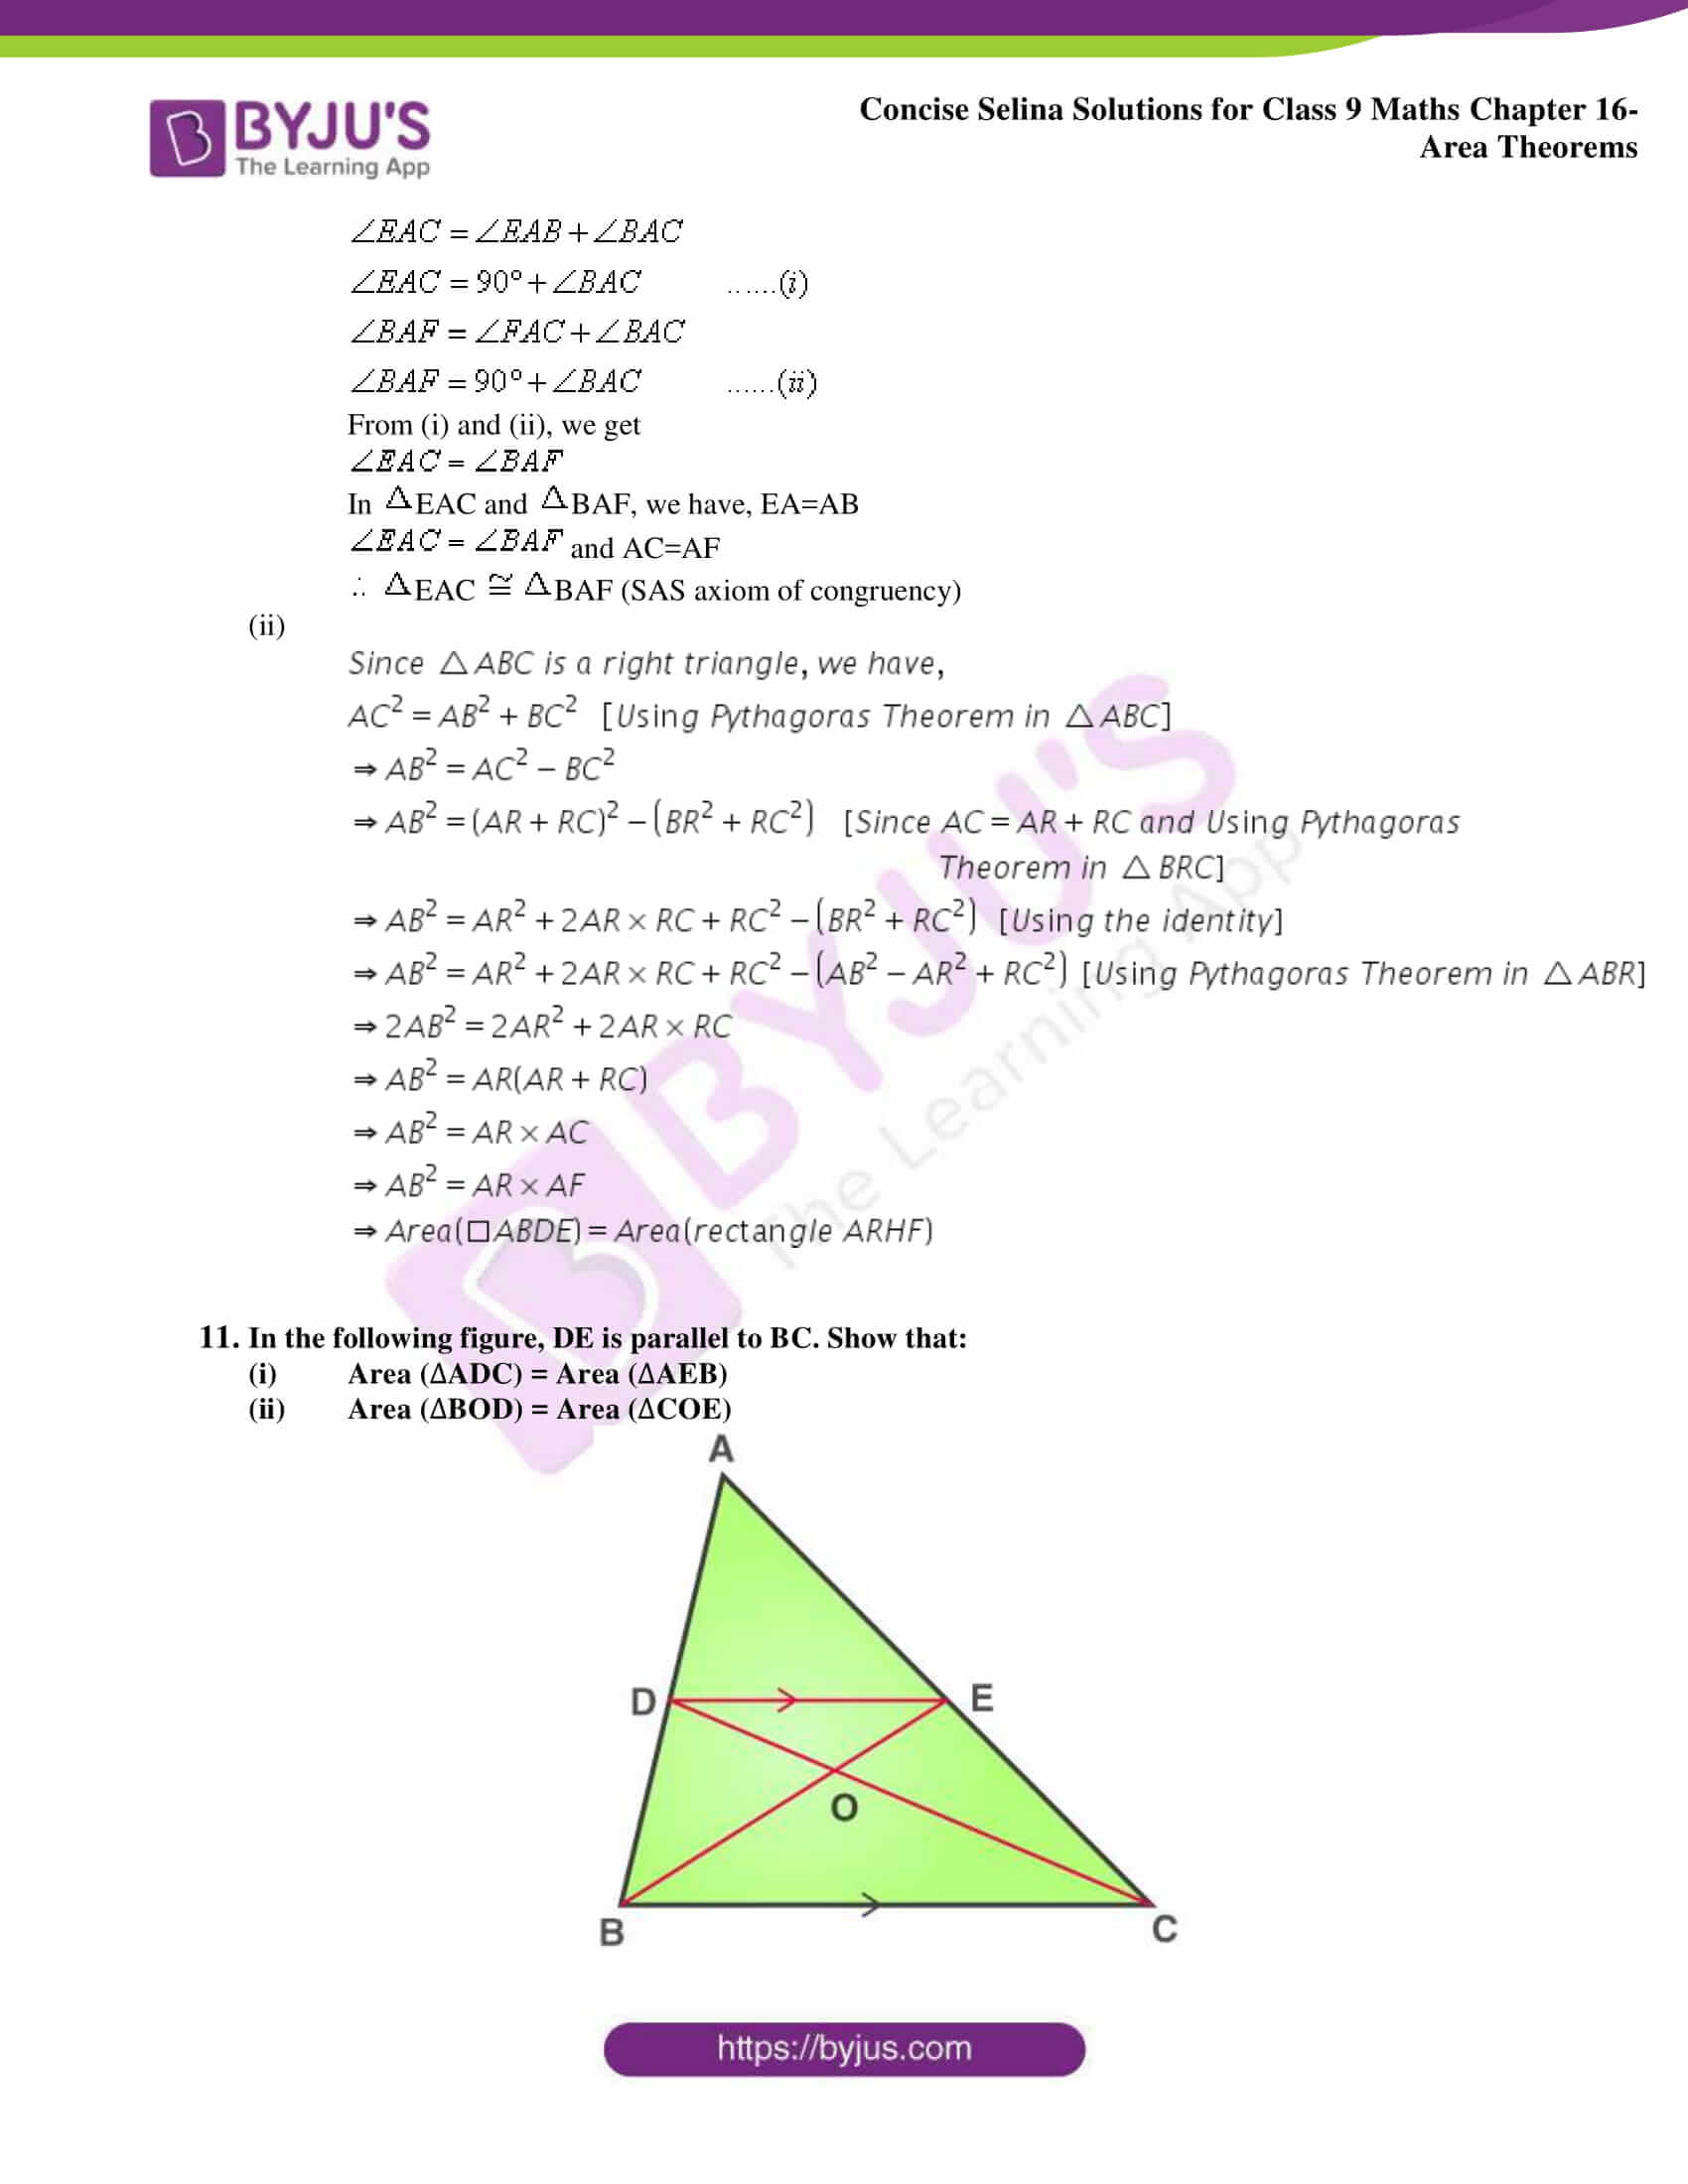 Concise Selina Solutions Class 9 Maths Chapter 16 Area Theorems part 09